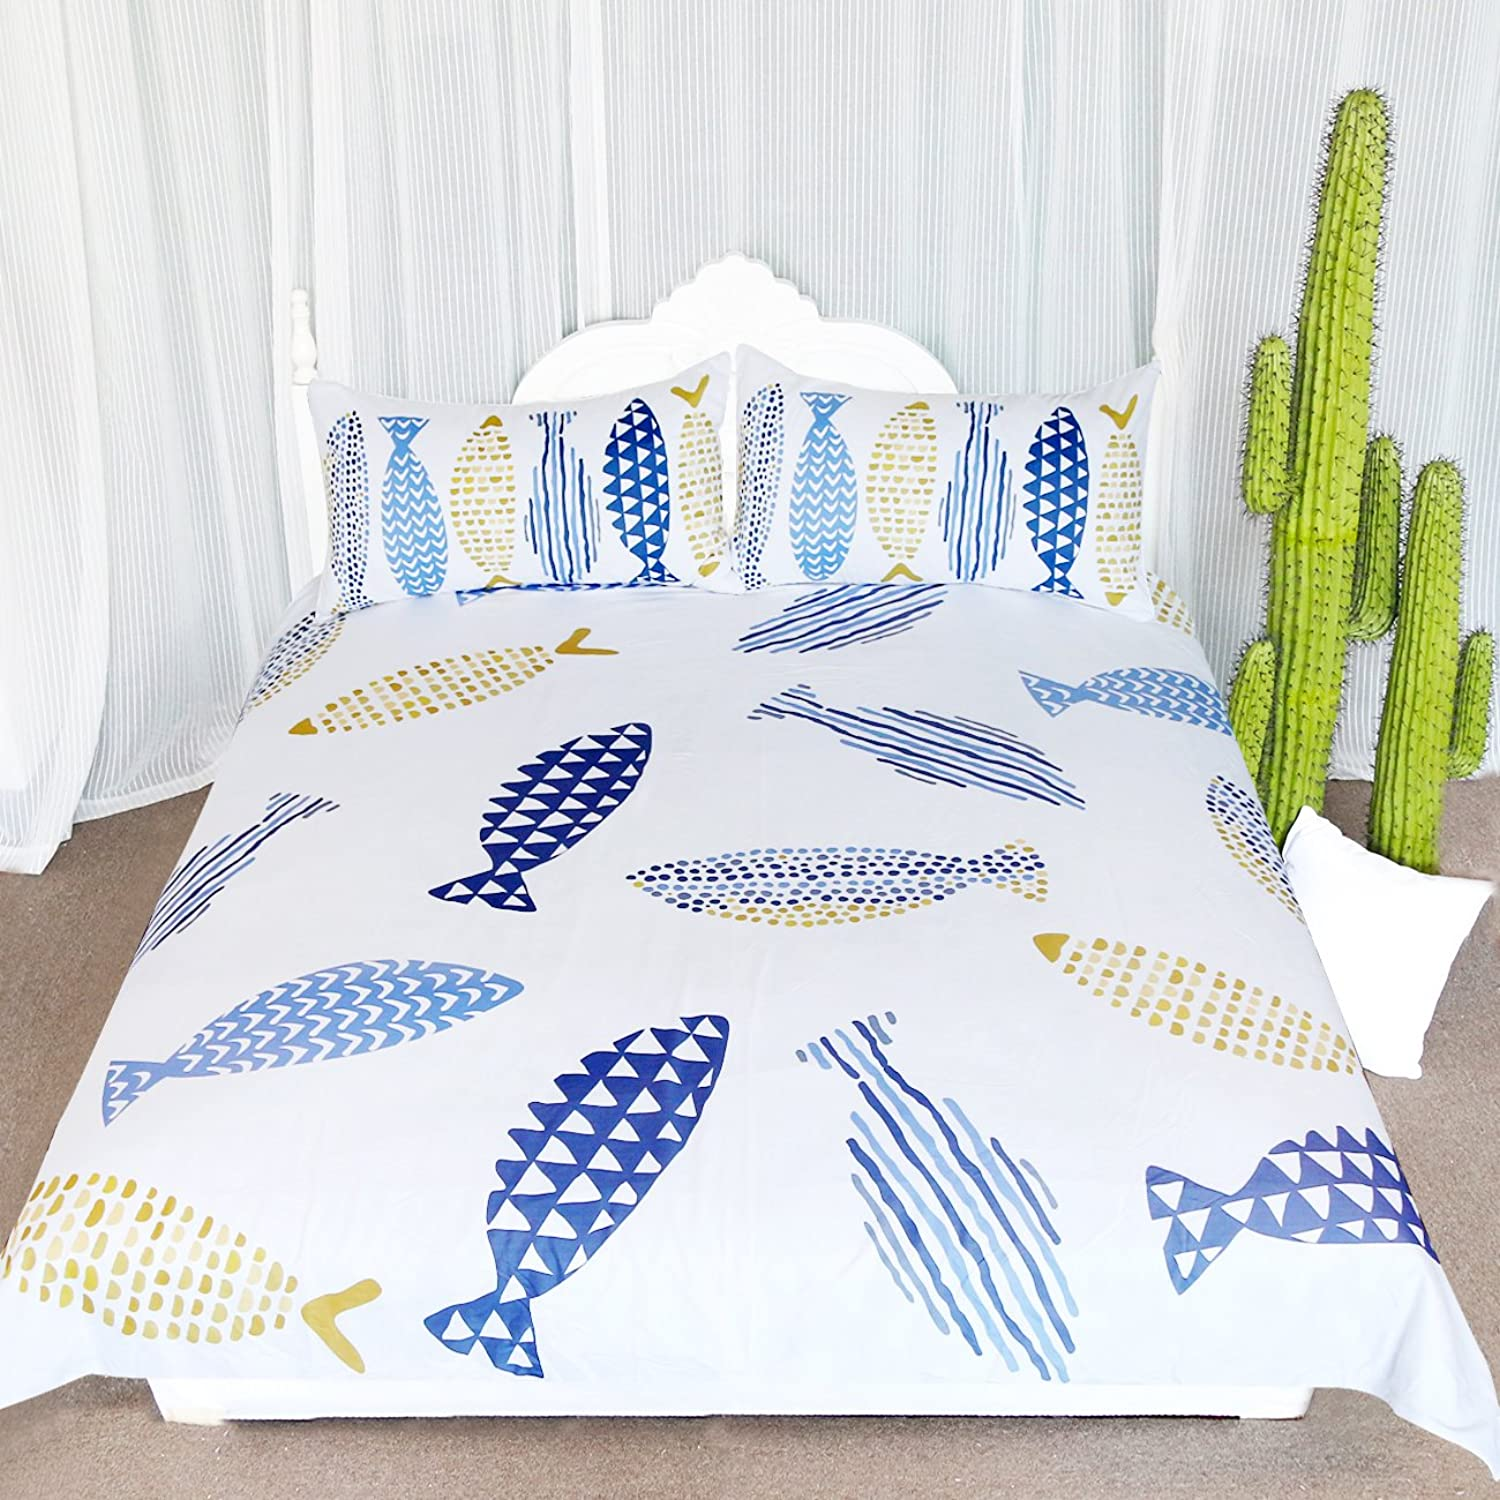 ARIGHTEX Fishy Bedding Geometric Drawing of Fish Duvet Cover Quilt Cover Set White Bedding Sets for Teens Girls Little Boys (Queen)